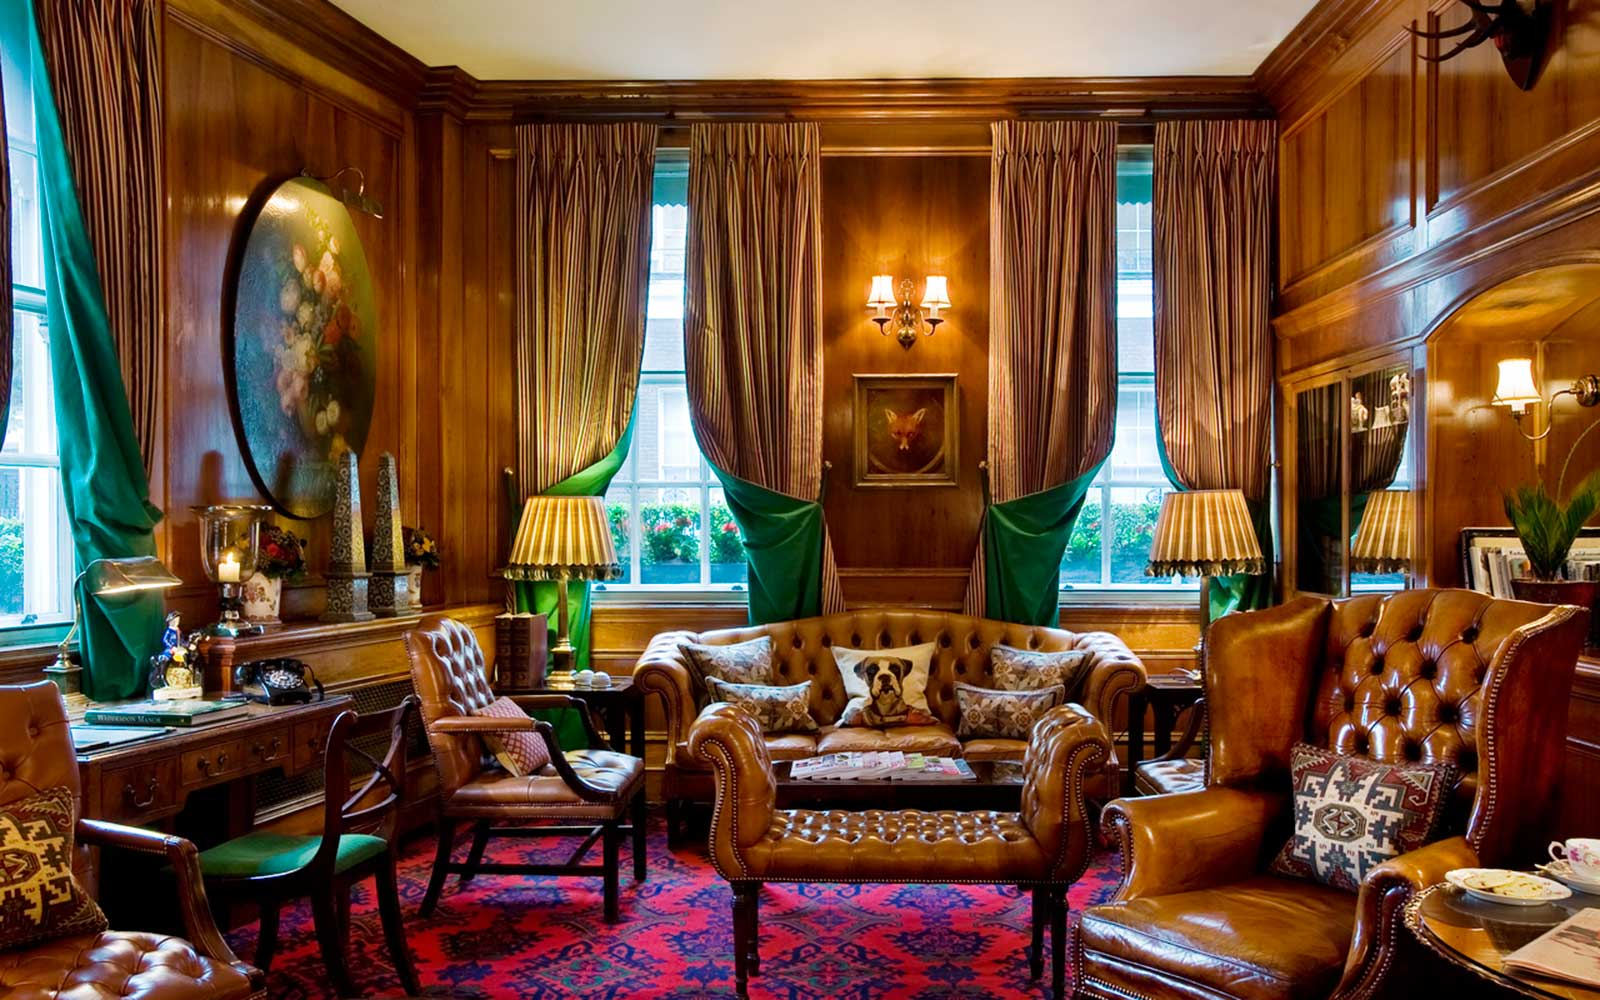 Chesterfield Mayfair Hotel in London